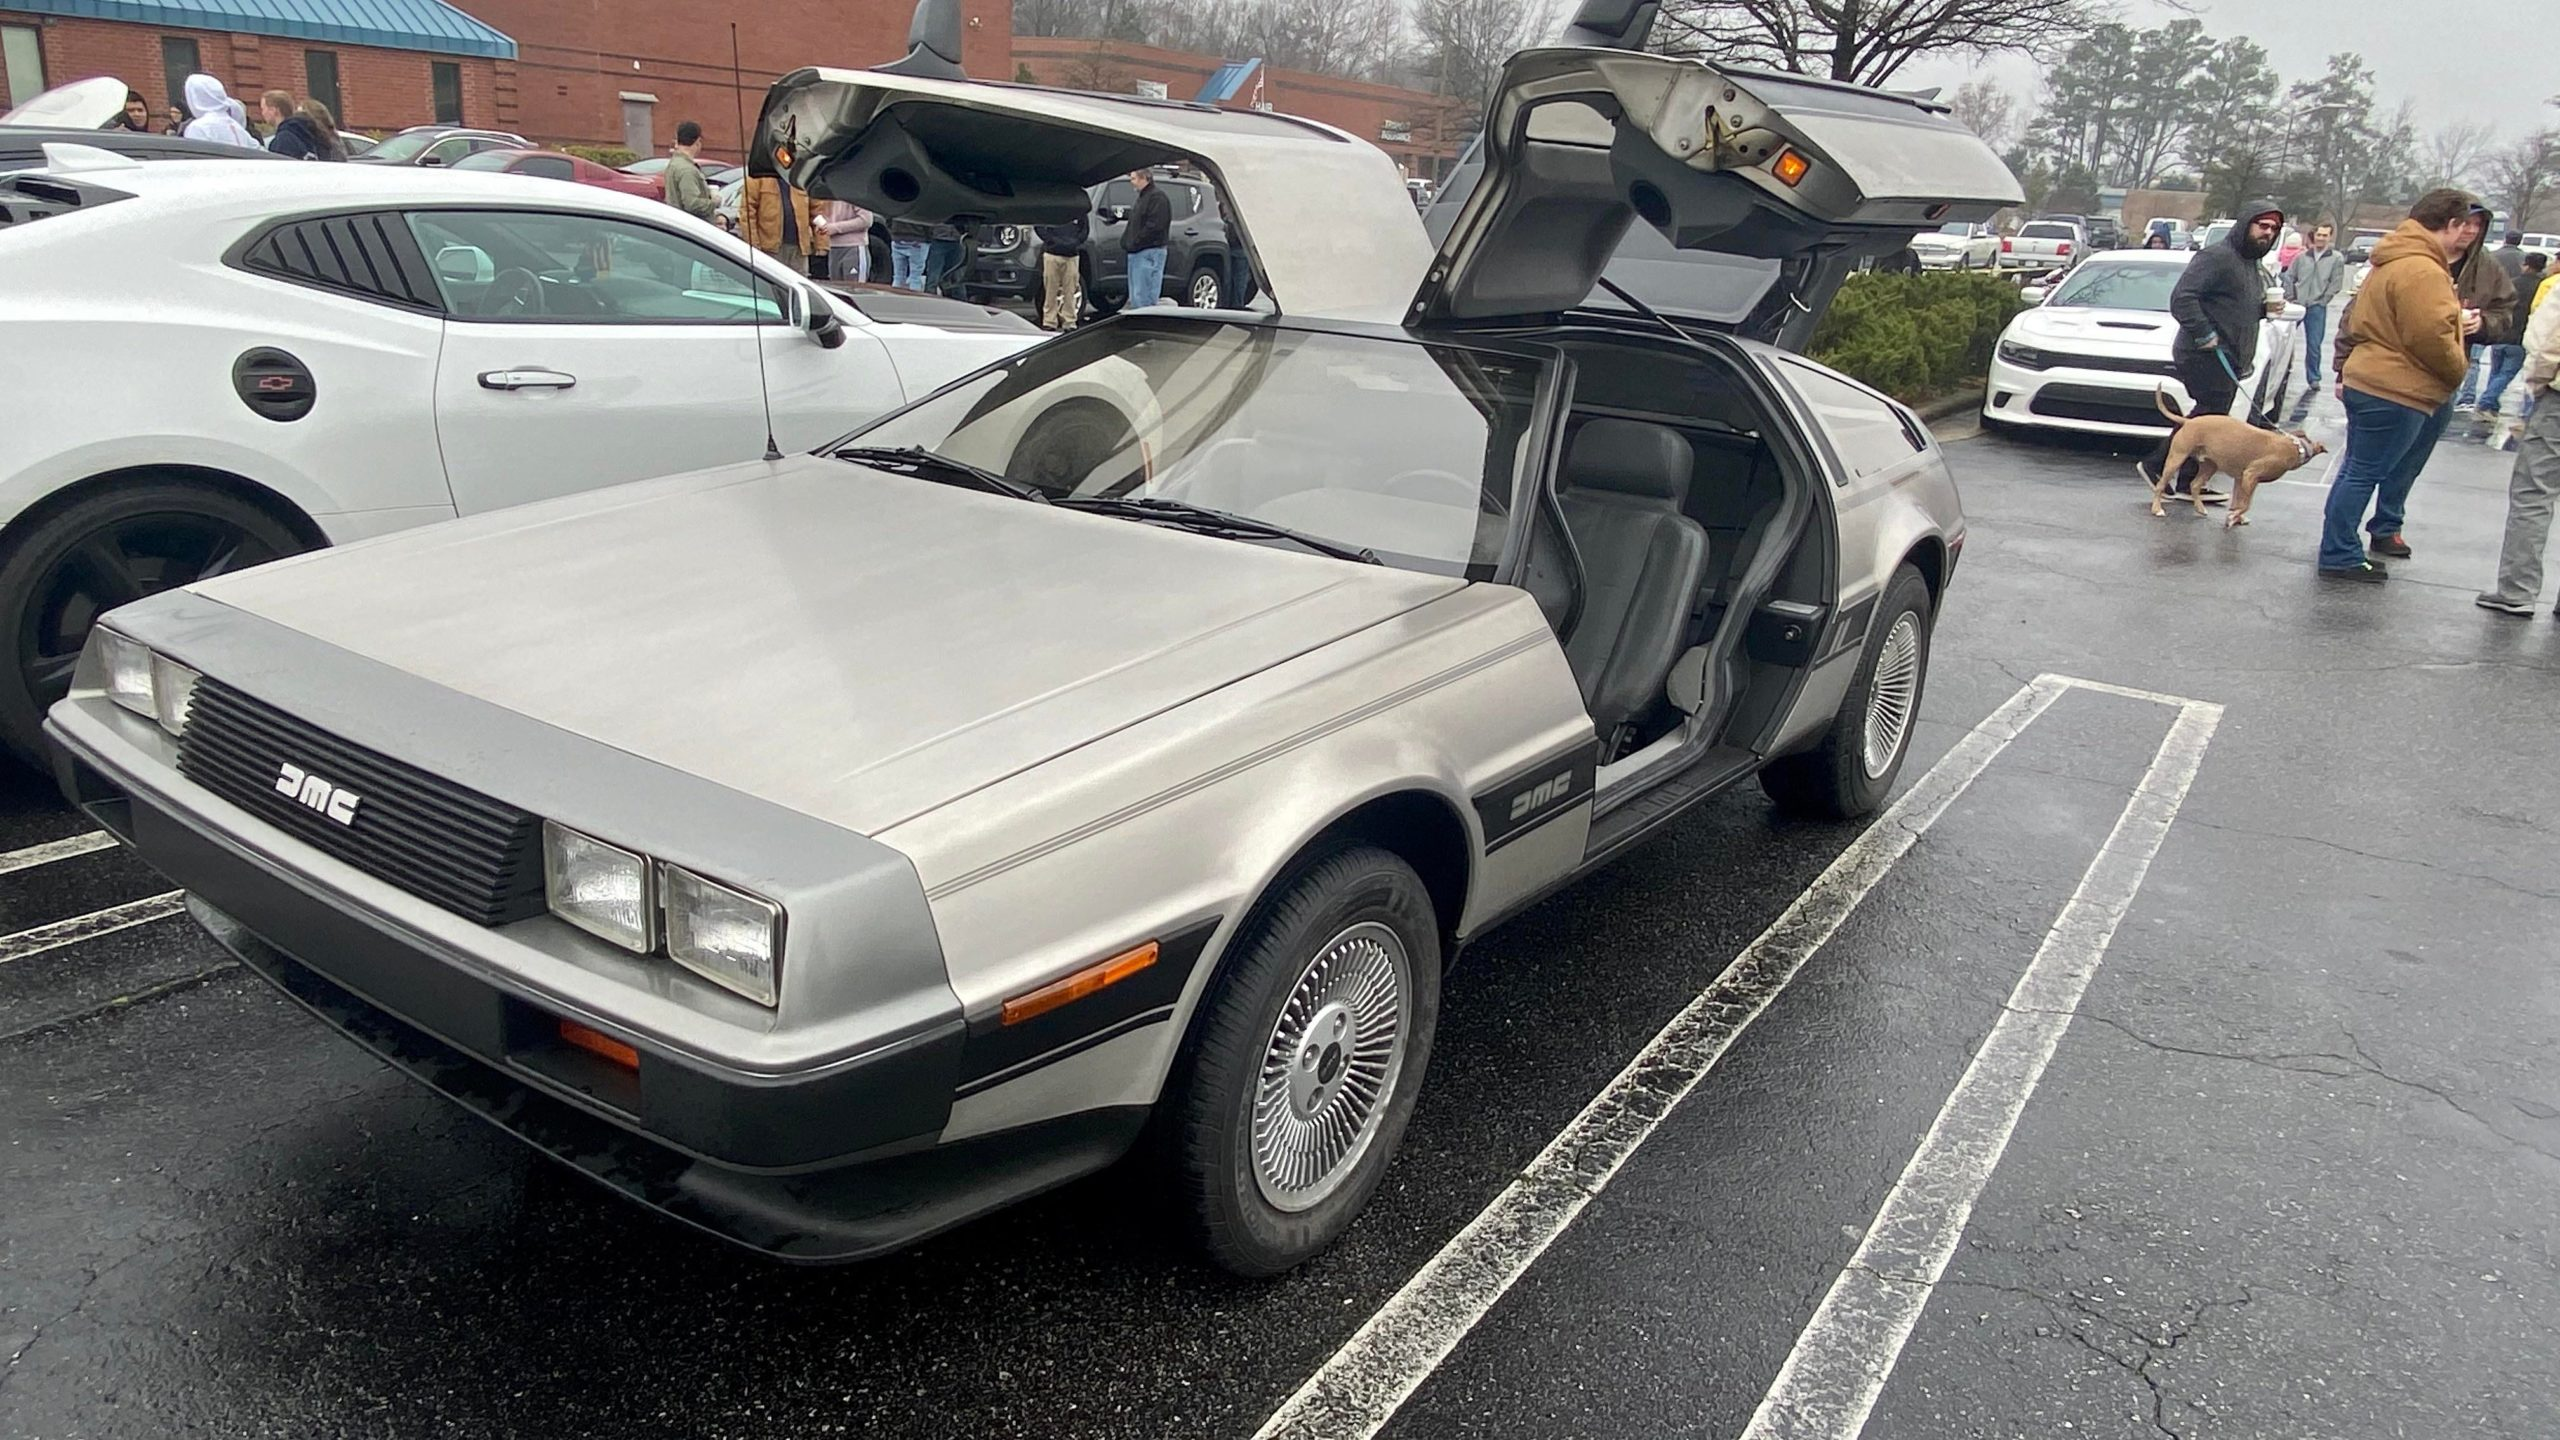 Great Scott! A Delorean